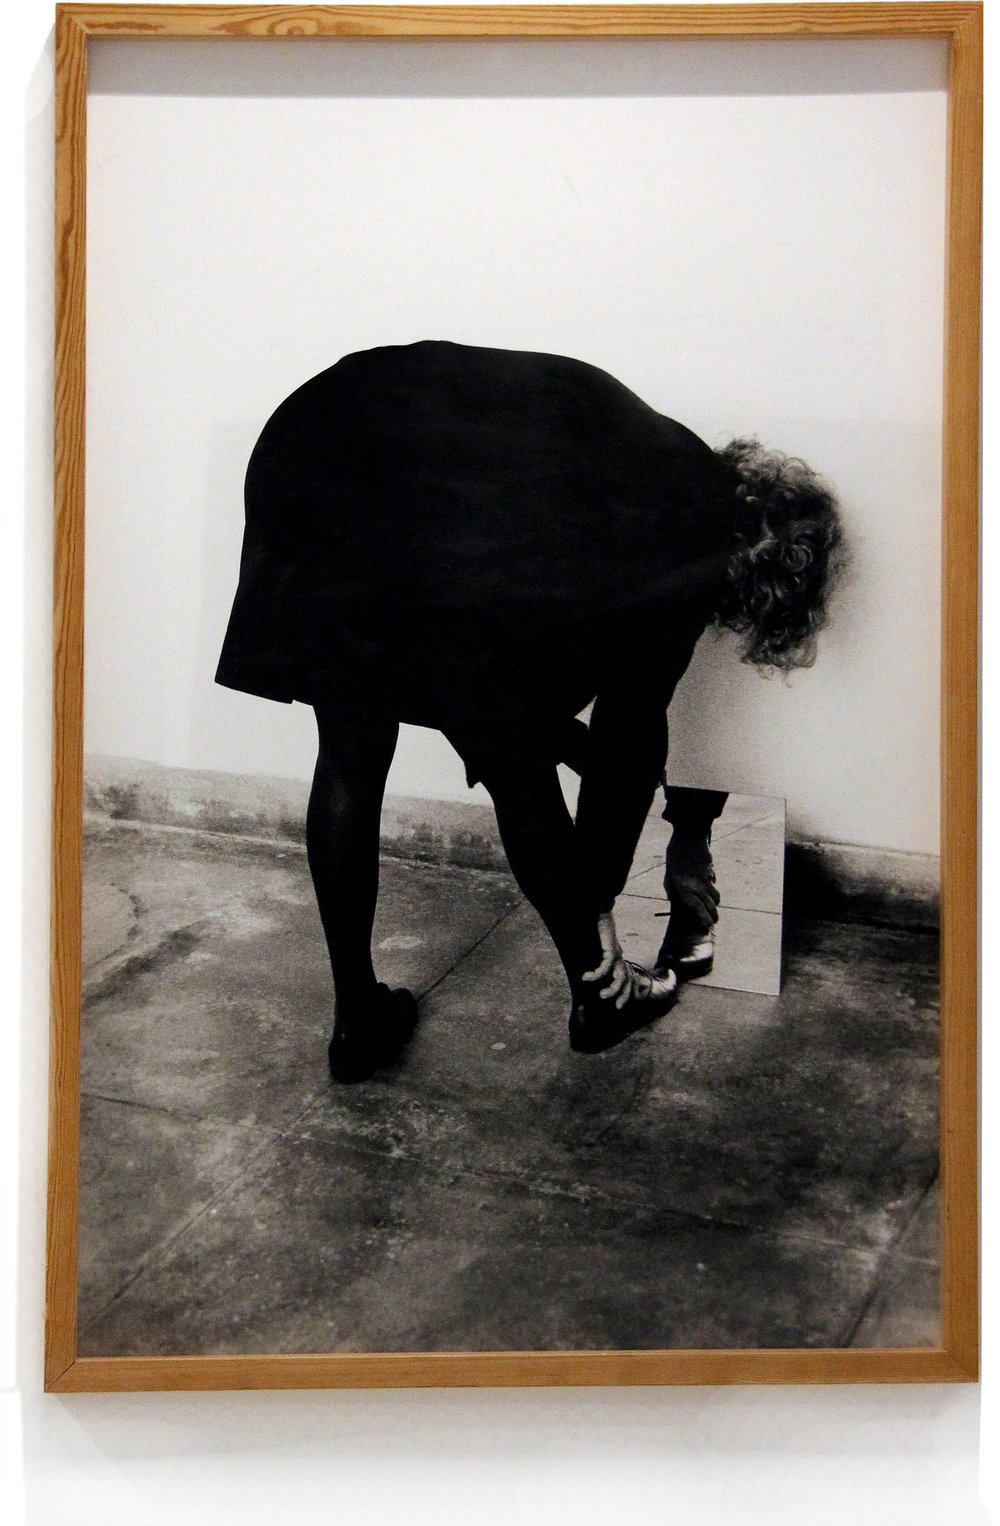 Helena Almeida    Dentro de mim,  2000  Photography on paper  132 x 90 cm